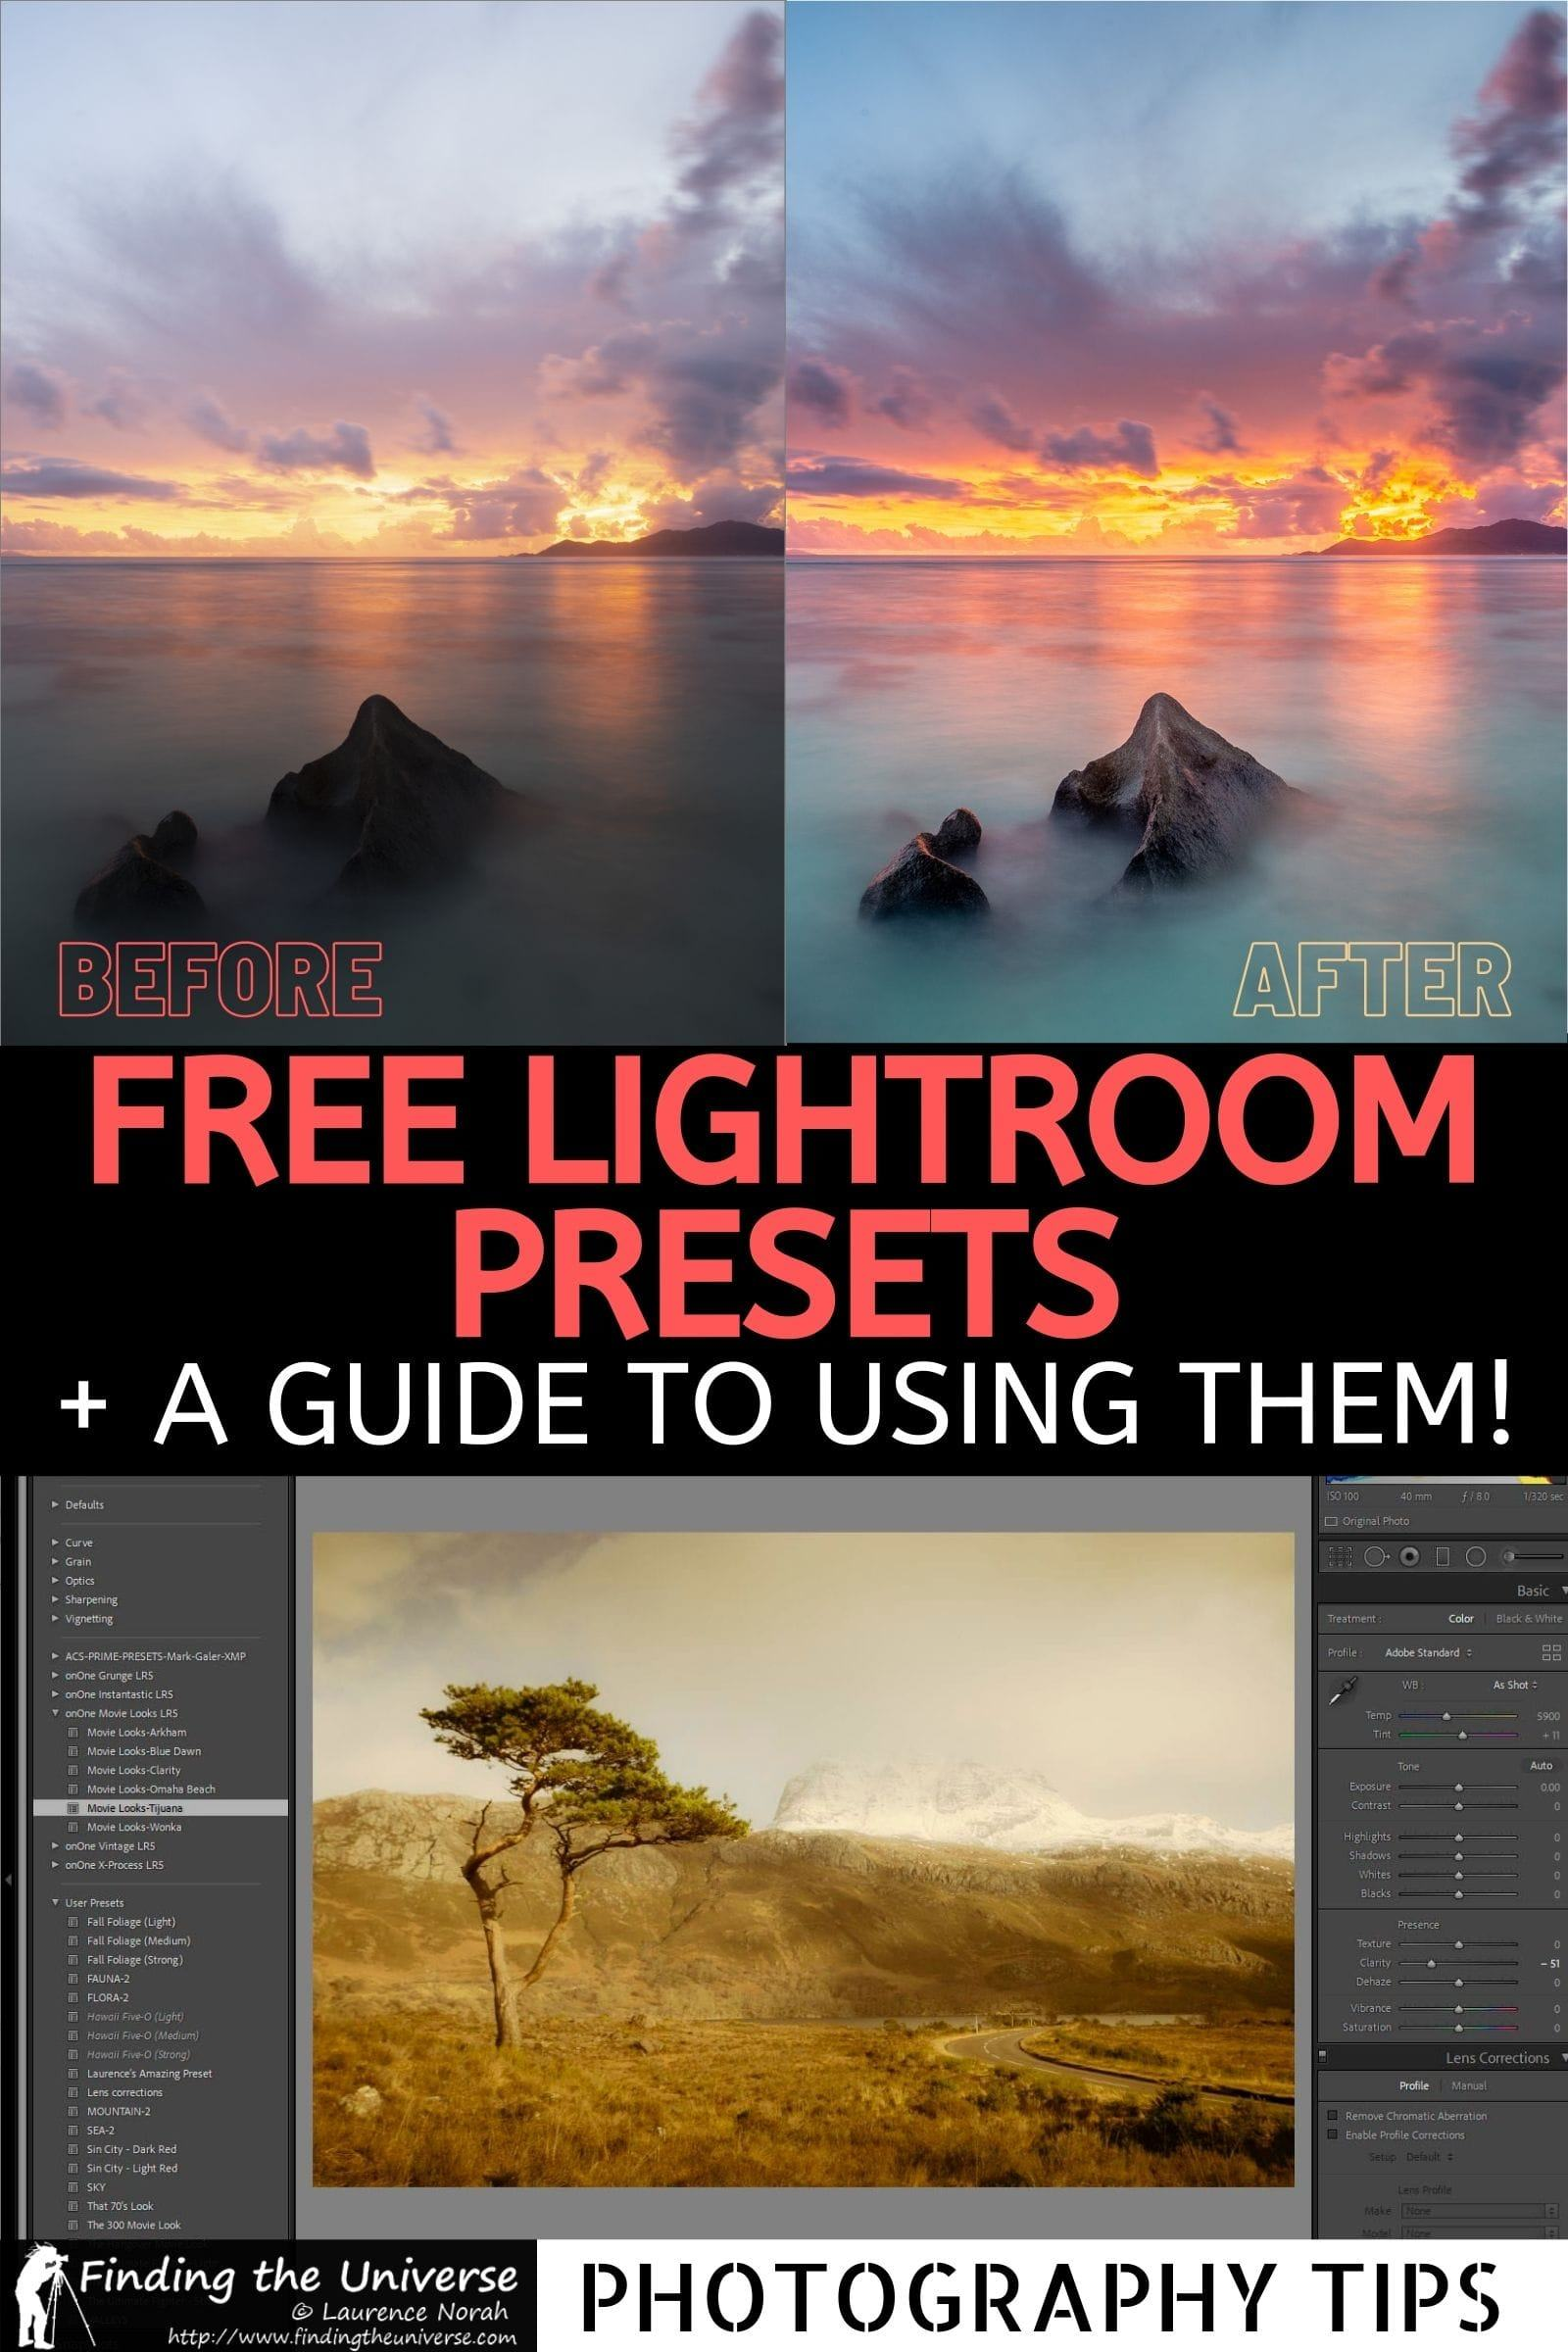 A guide to free Lightroom presets. Where to download free Lightroom presets, how to install and create your own presets, and more!